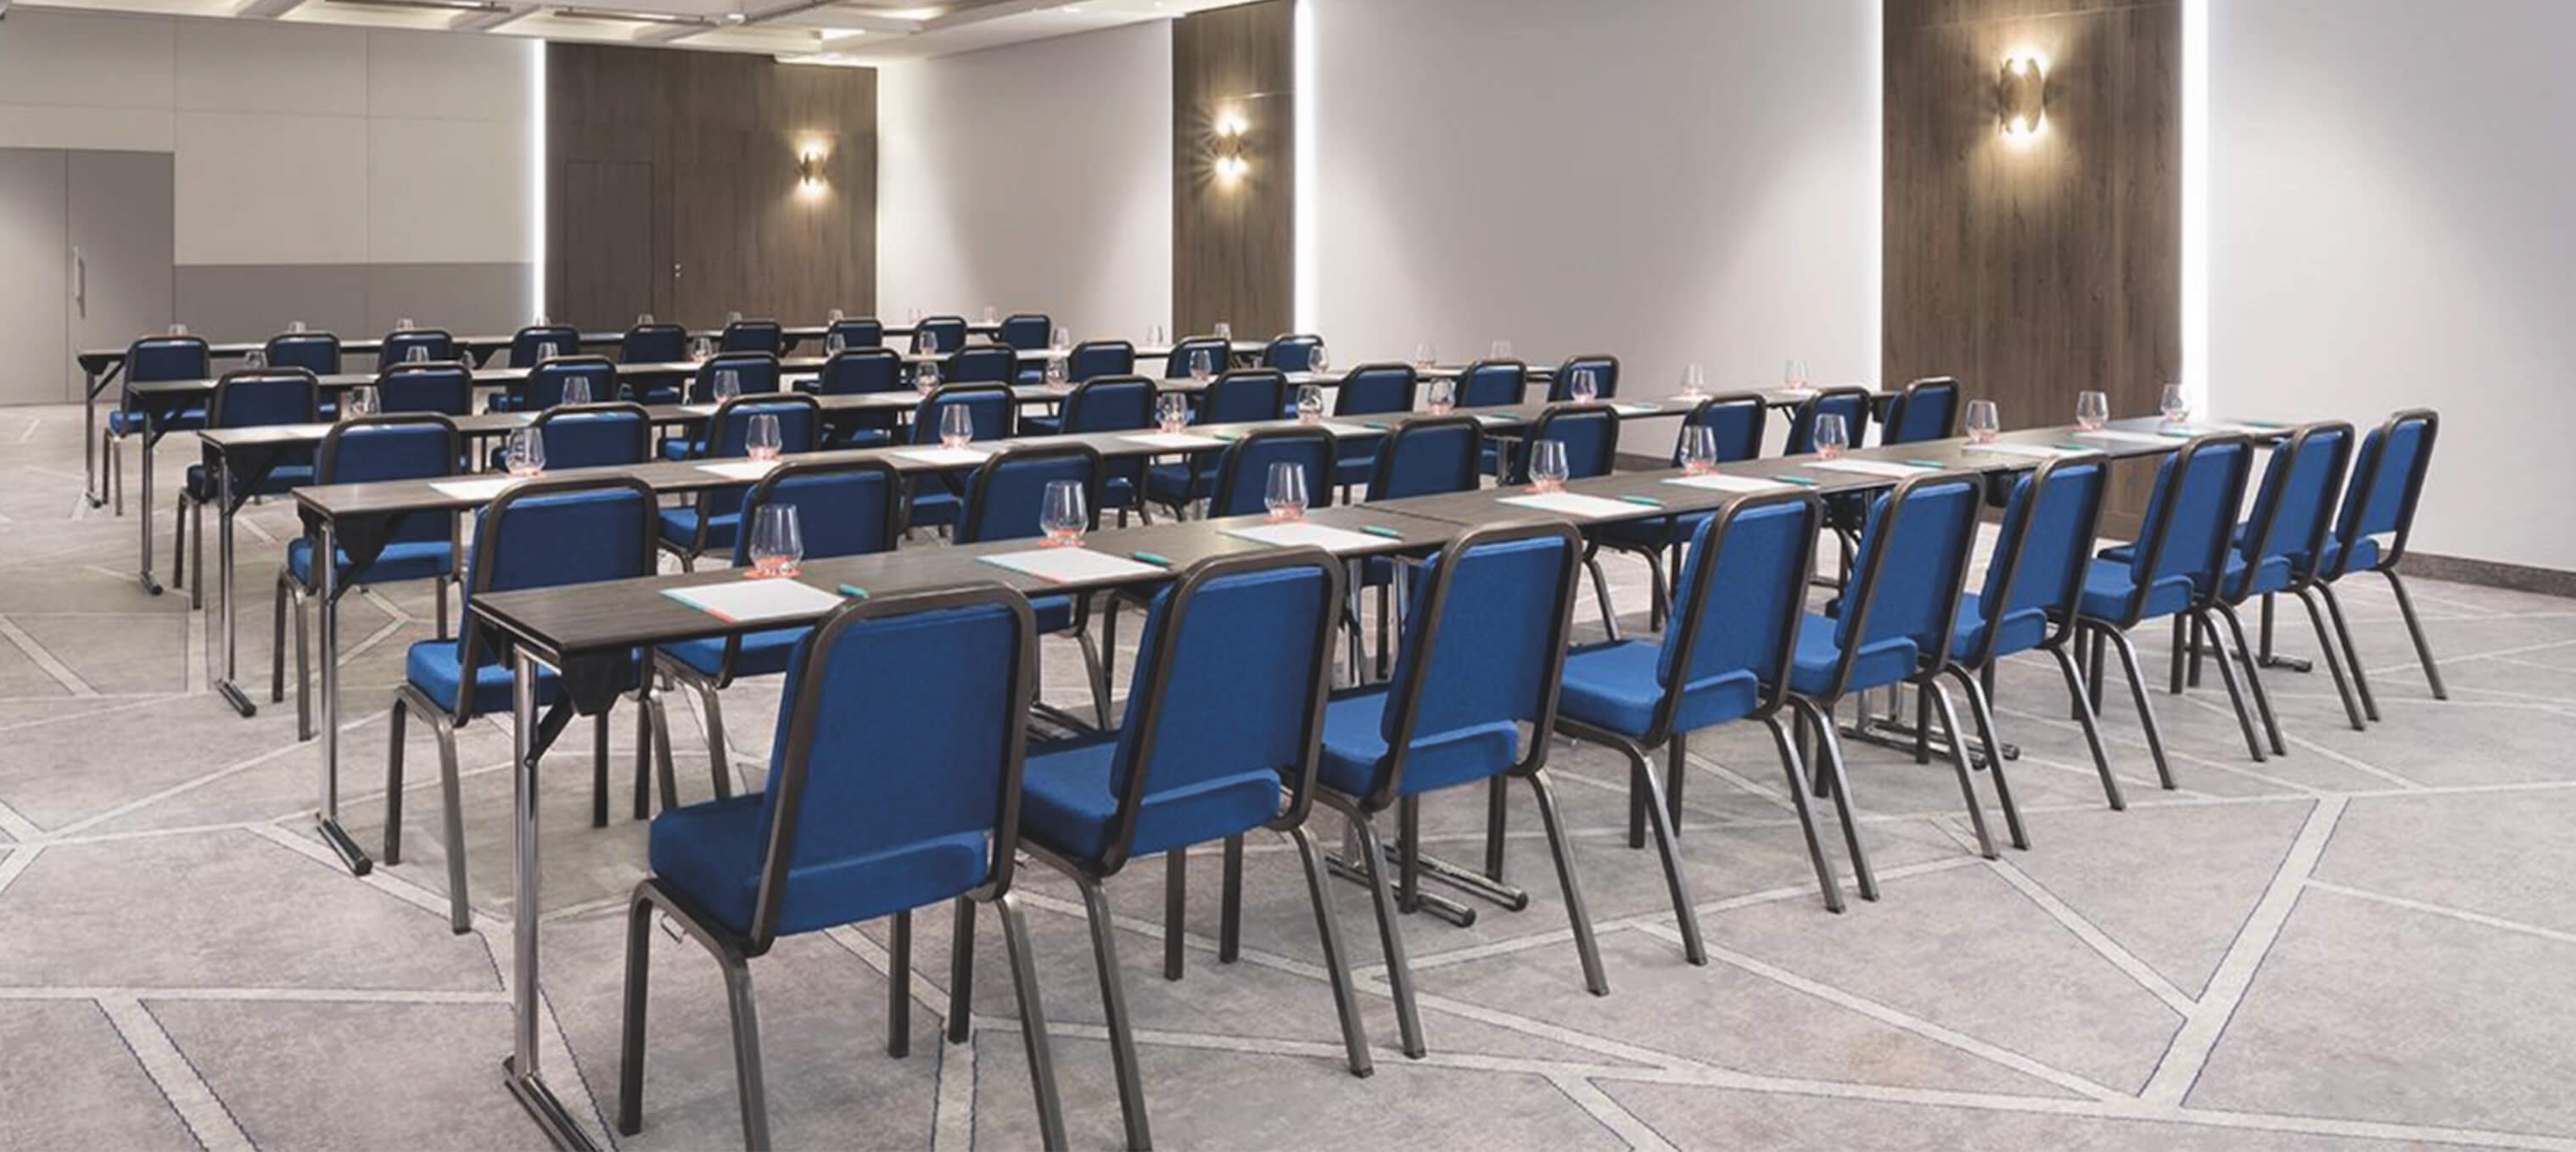 Turini Conference Chair, System C Conference table in a Conference 2 3036x1358